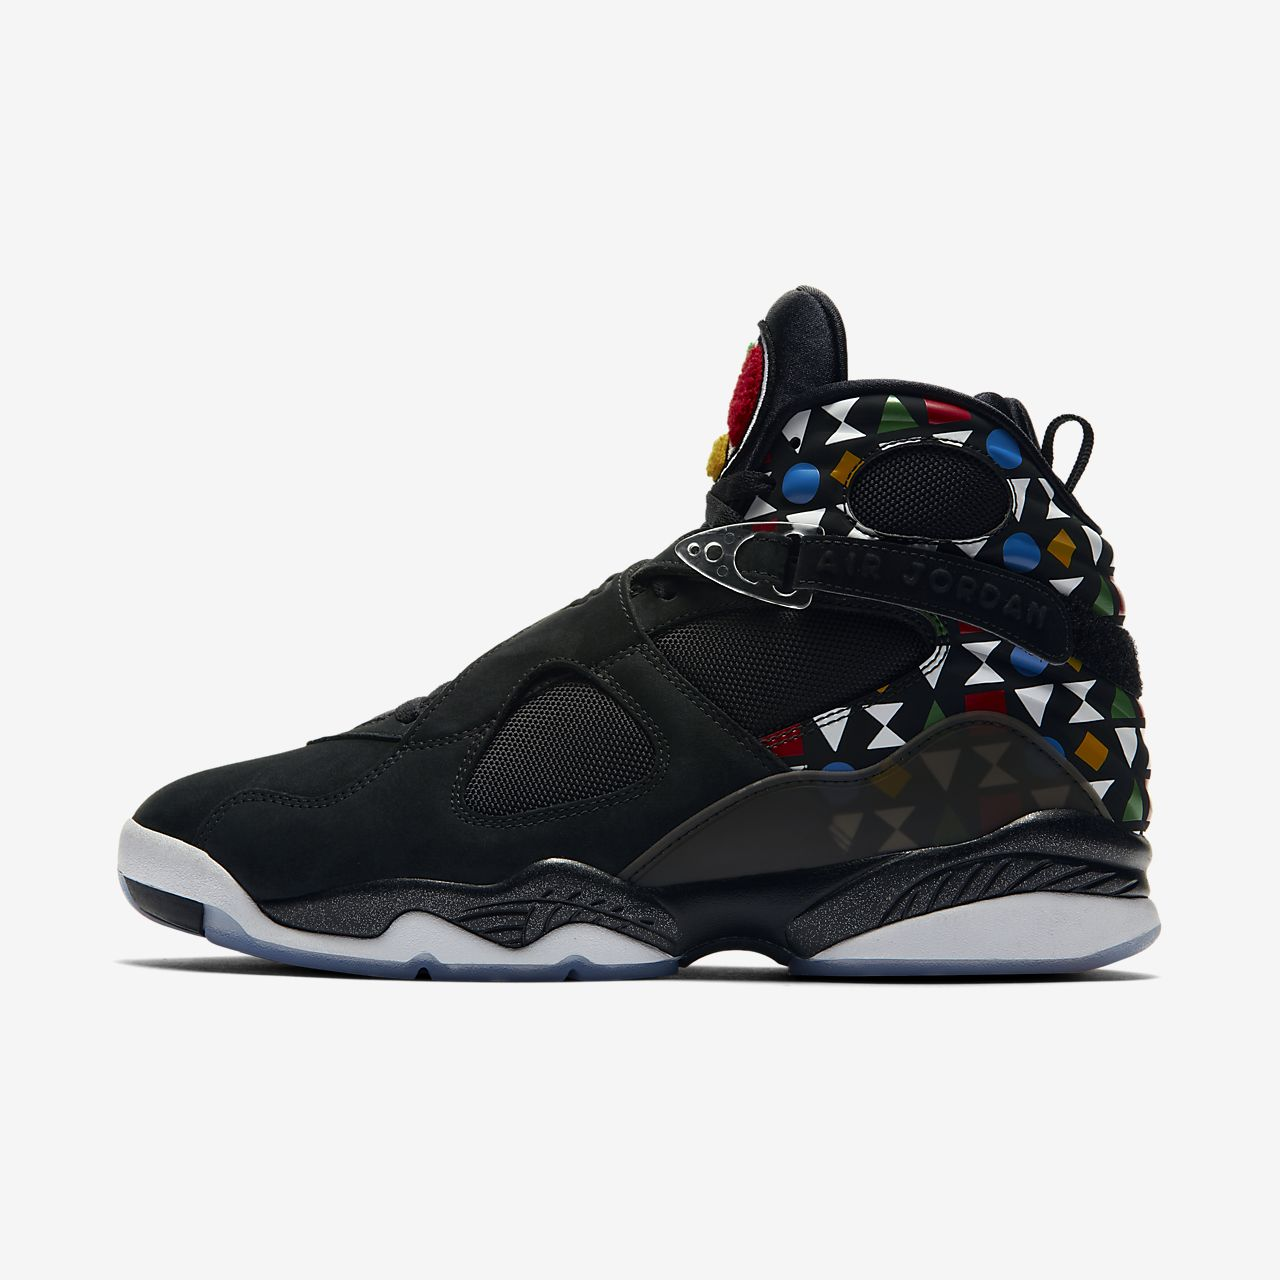 Air Jordan 8 Retro Q54 Herenschoen